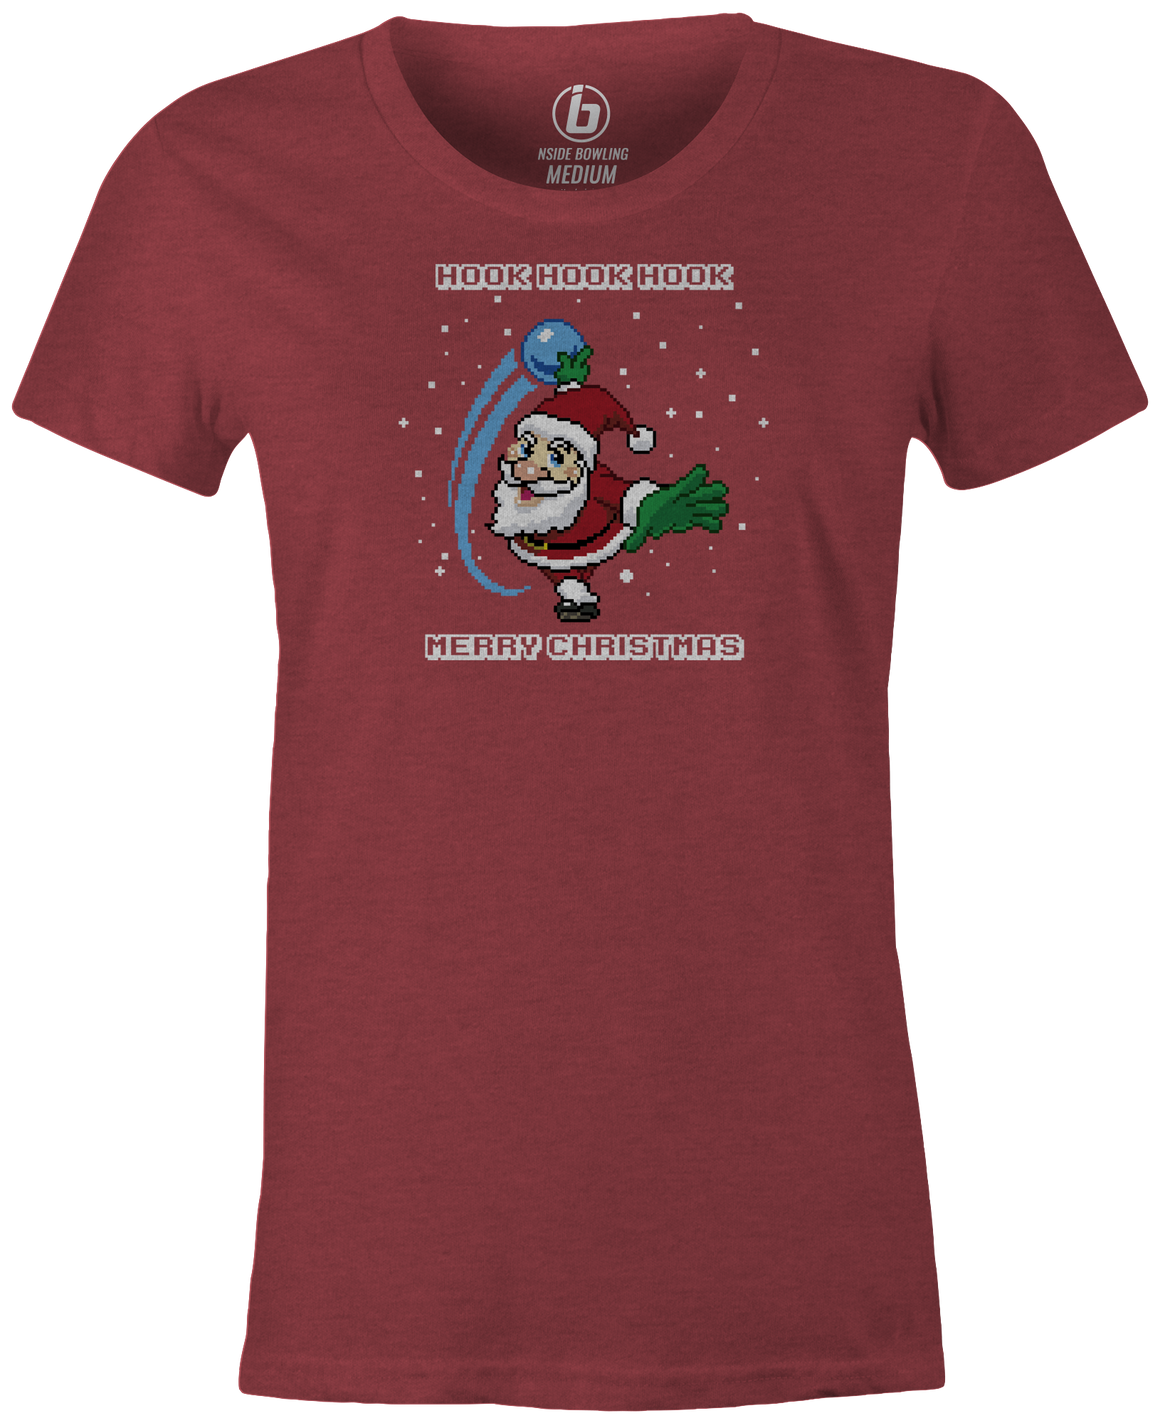 ugly bowling Christmas sweater tee t-shirt tshirt tee-shirt bowlingshirt shirt holiday gift guide